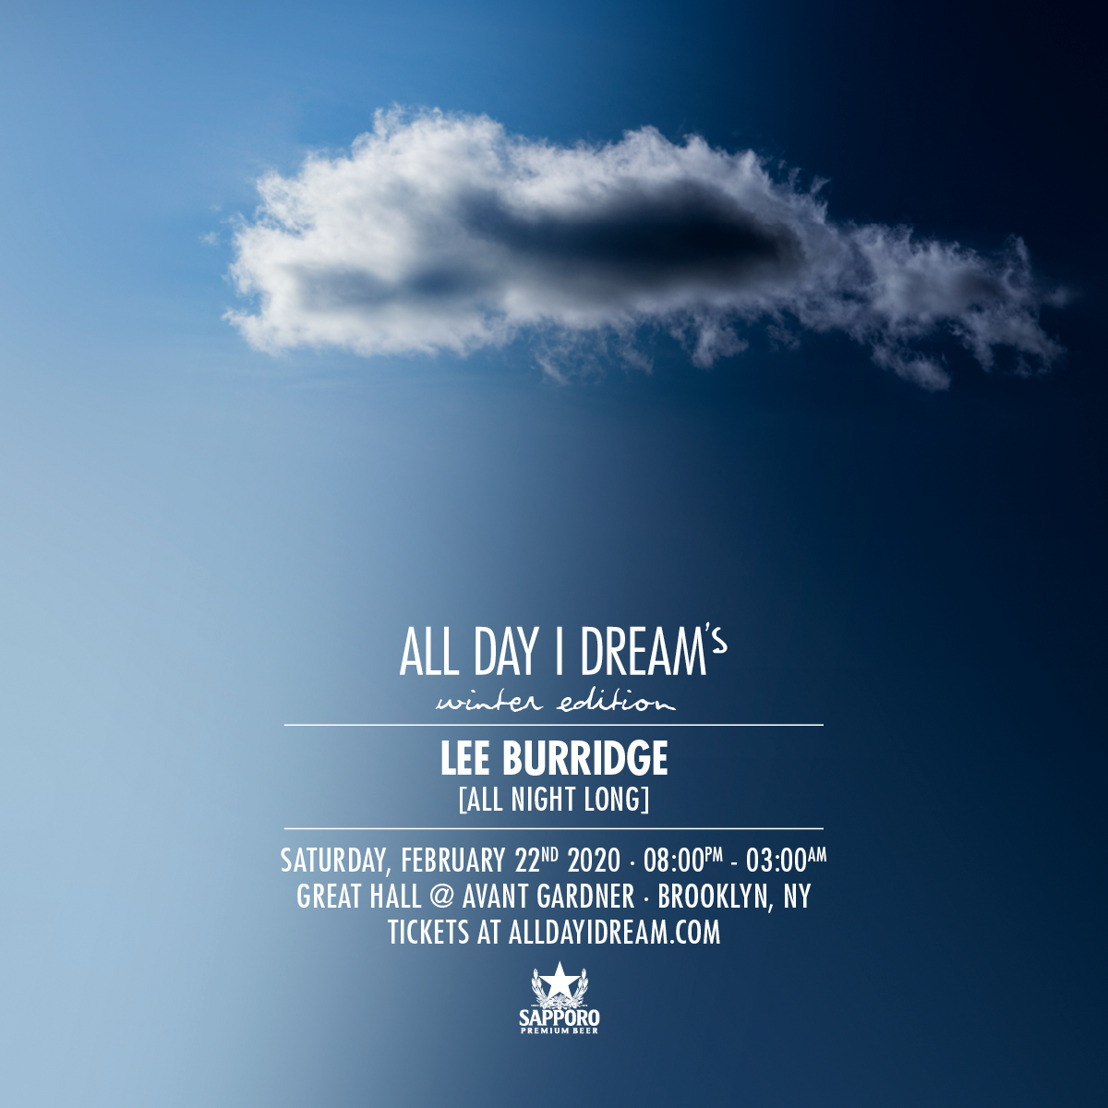 Lee Burridge Announces All Day I Dream Winter Edition